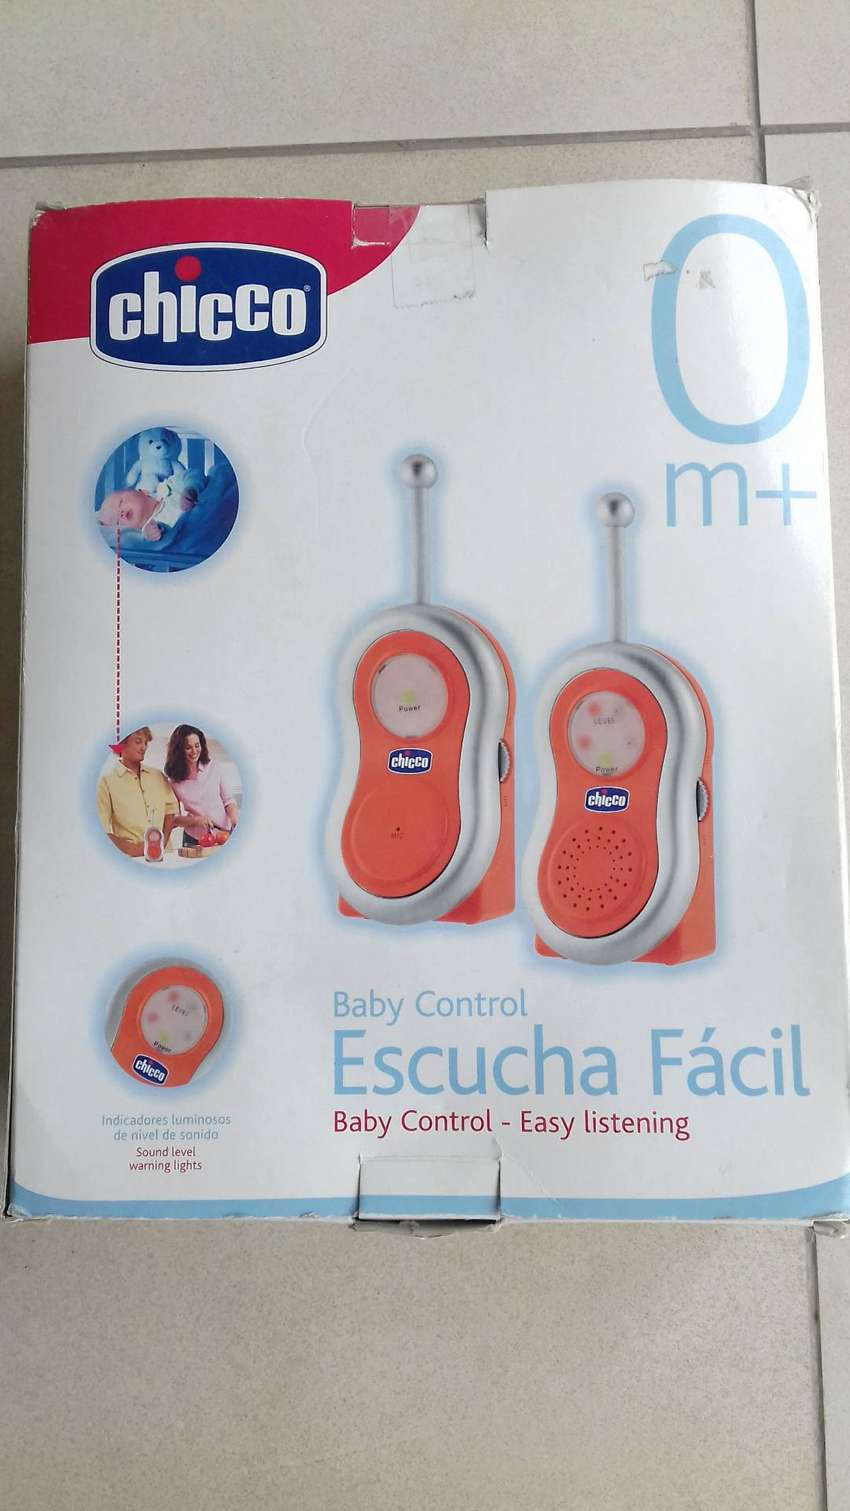 Baby Call Chicco 0